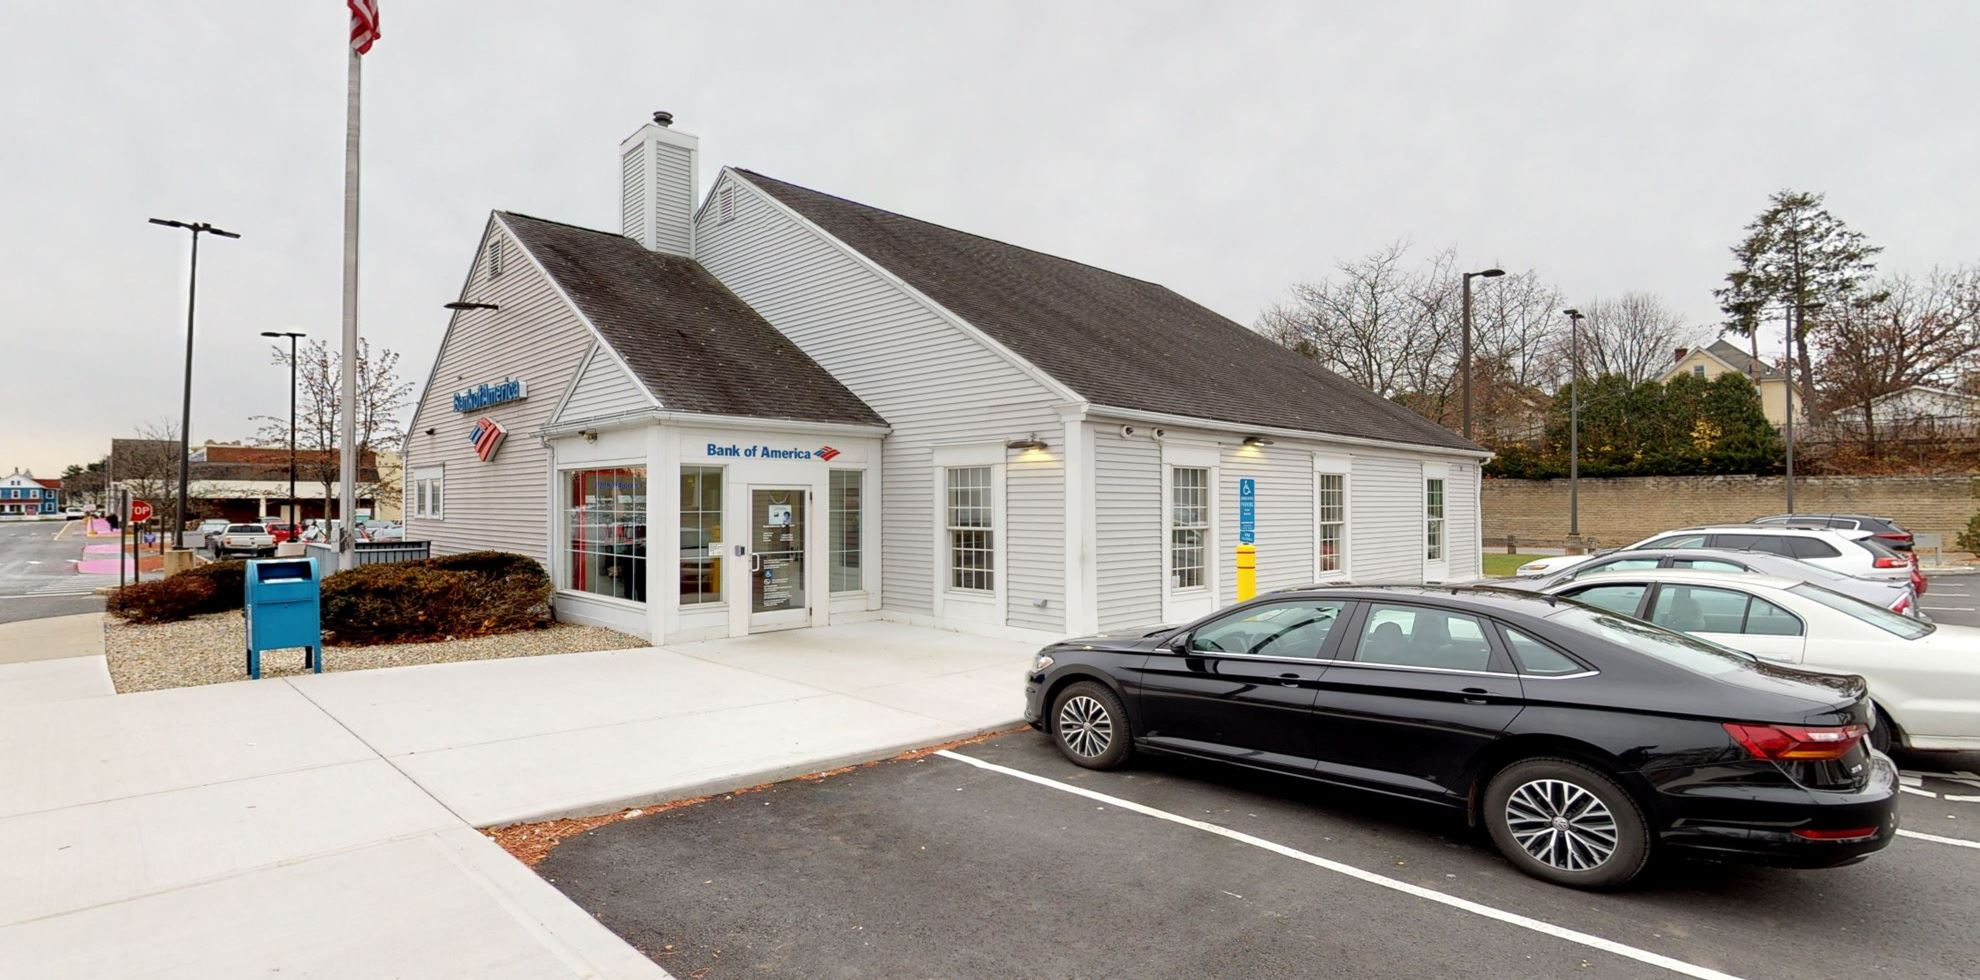 Bank of America financial center with drive-thru ATM | 40 Lincoln St, Holyoke, MA 01040